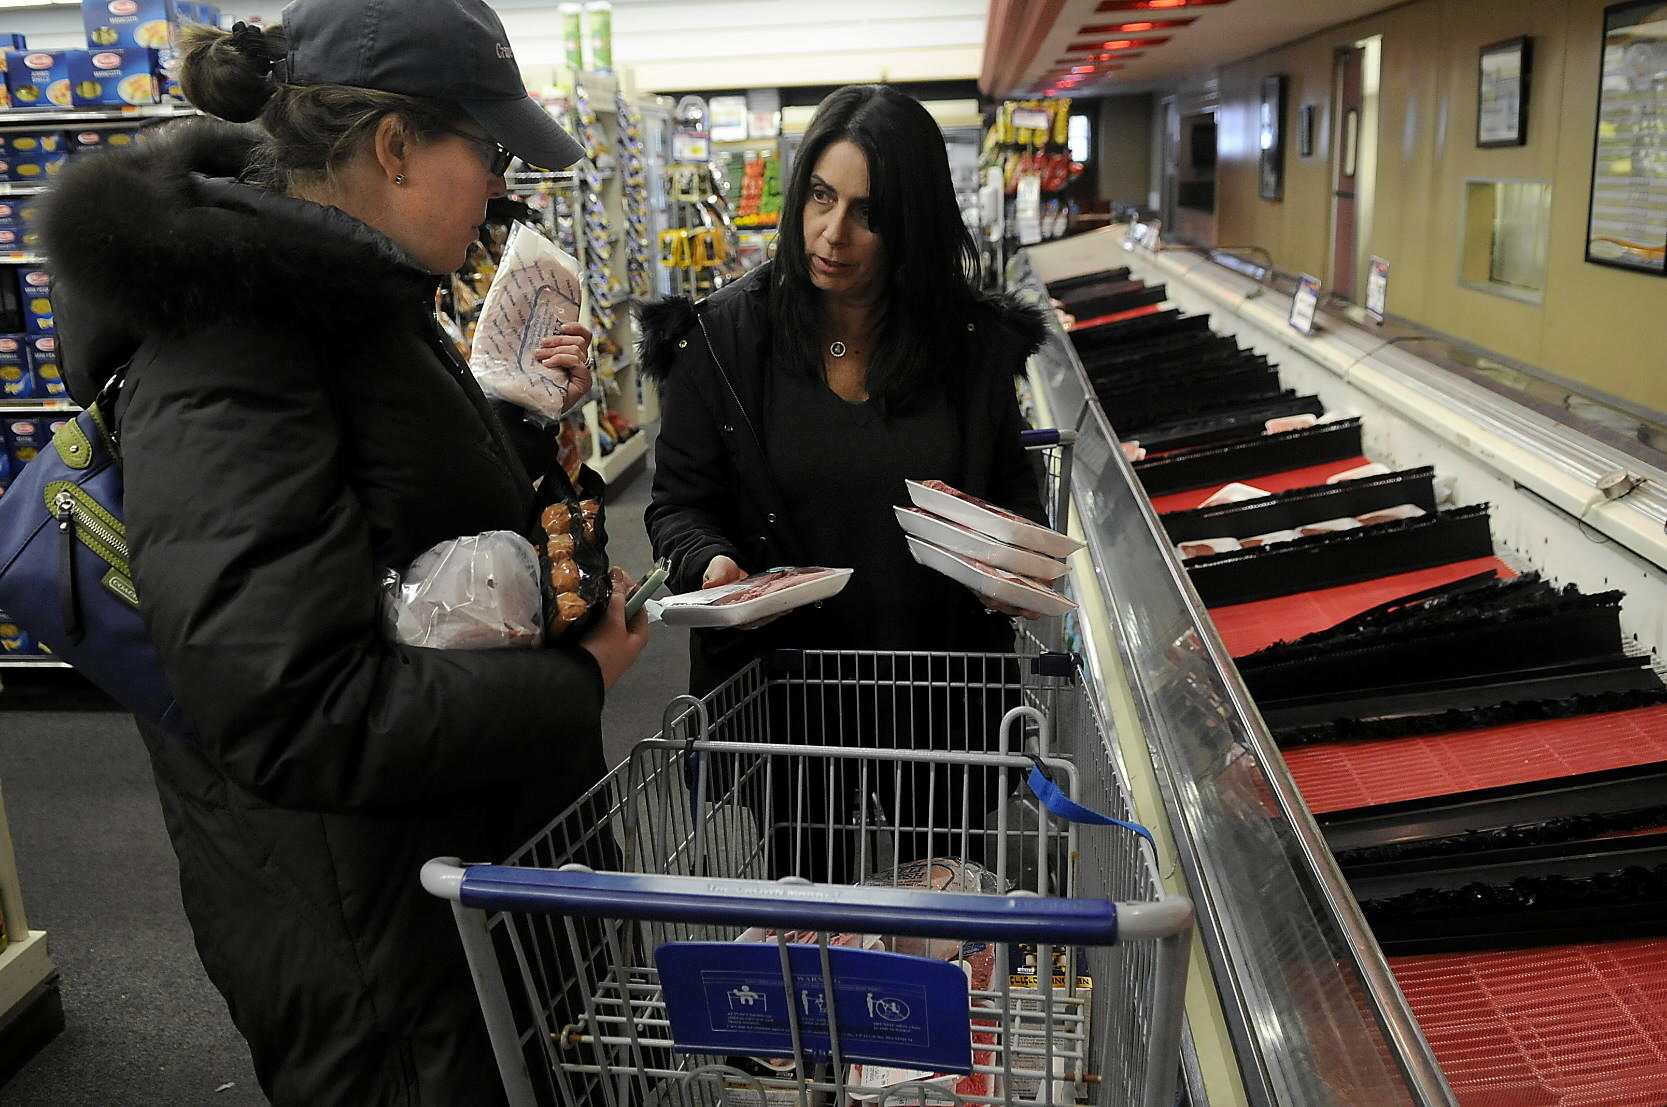 Betsy Marantz of Glastonbury, left, and Ellen Rosenberg of Simsbury collaborate on which meats each will take while shopping in at Crown Market in West Hartford on Wednesday afternoon.